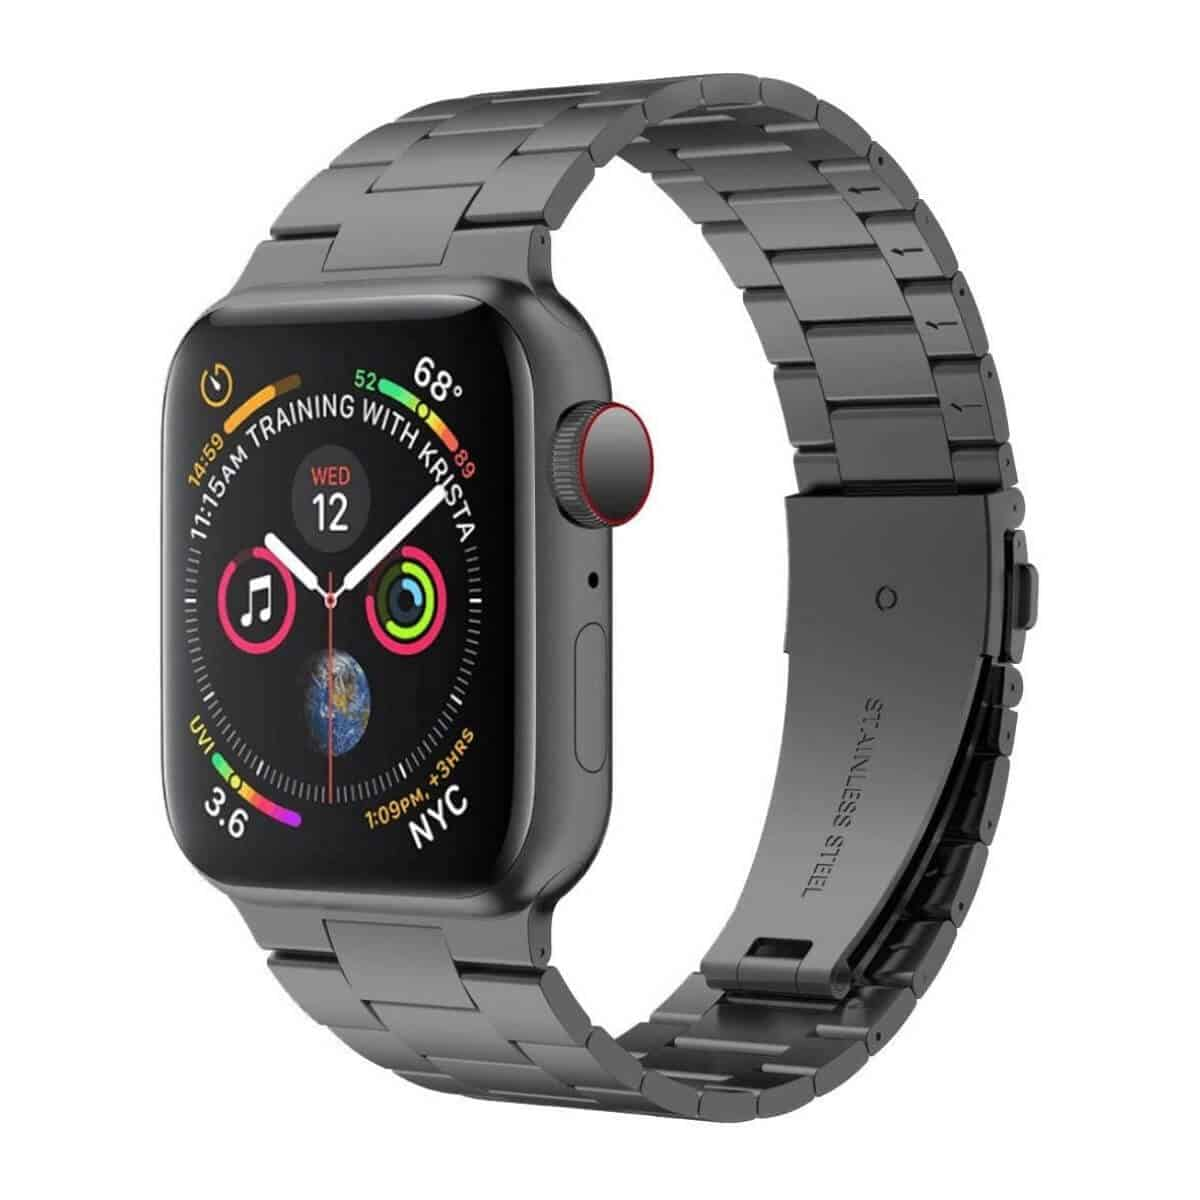 Apple Watch with a grey stainless steel band.